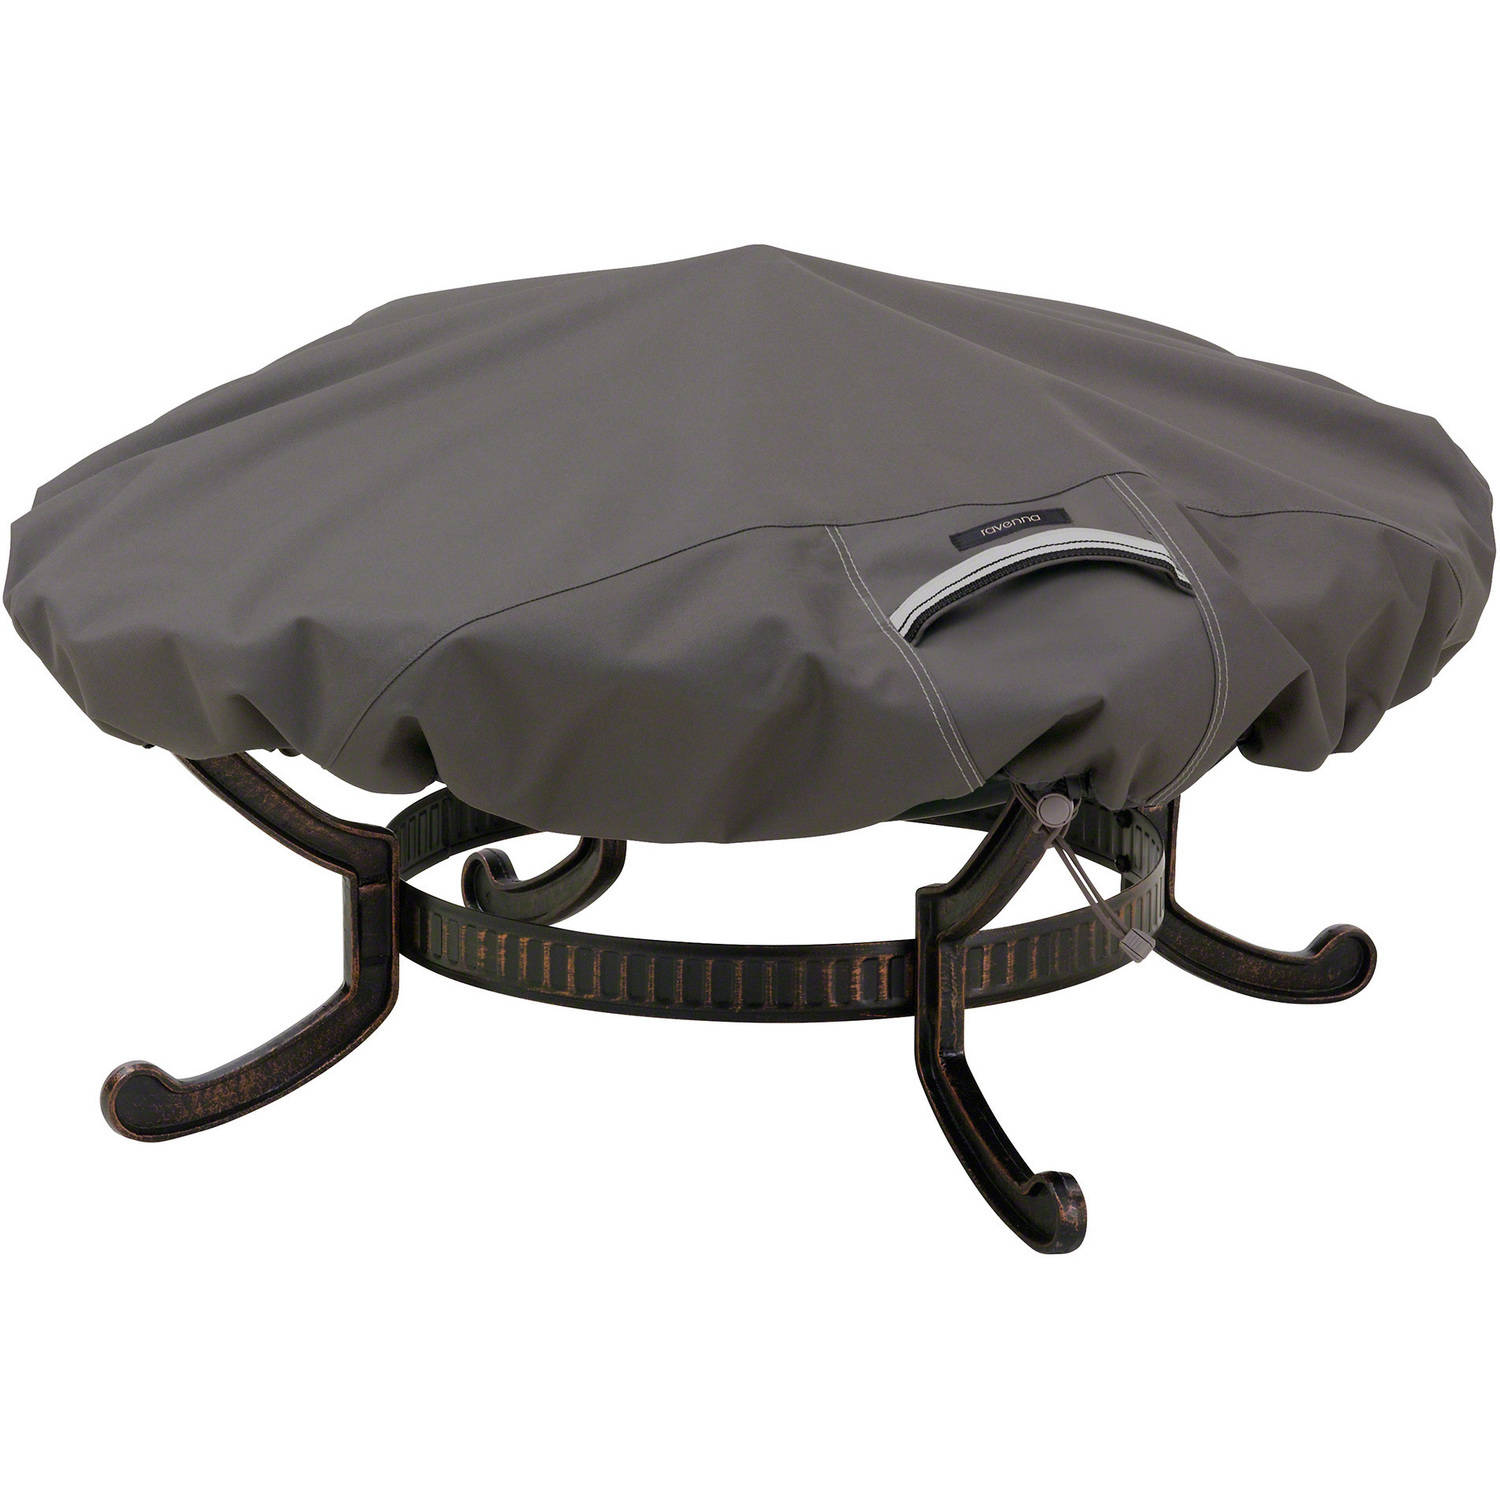 "Classic Accessories Ravenna Large Round Fire Pit Patio Storage Cover, Fits up to 60"" Diameter, Taupe"